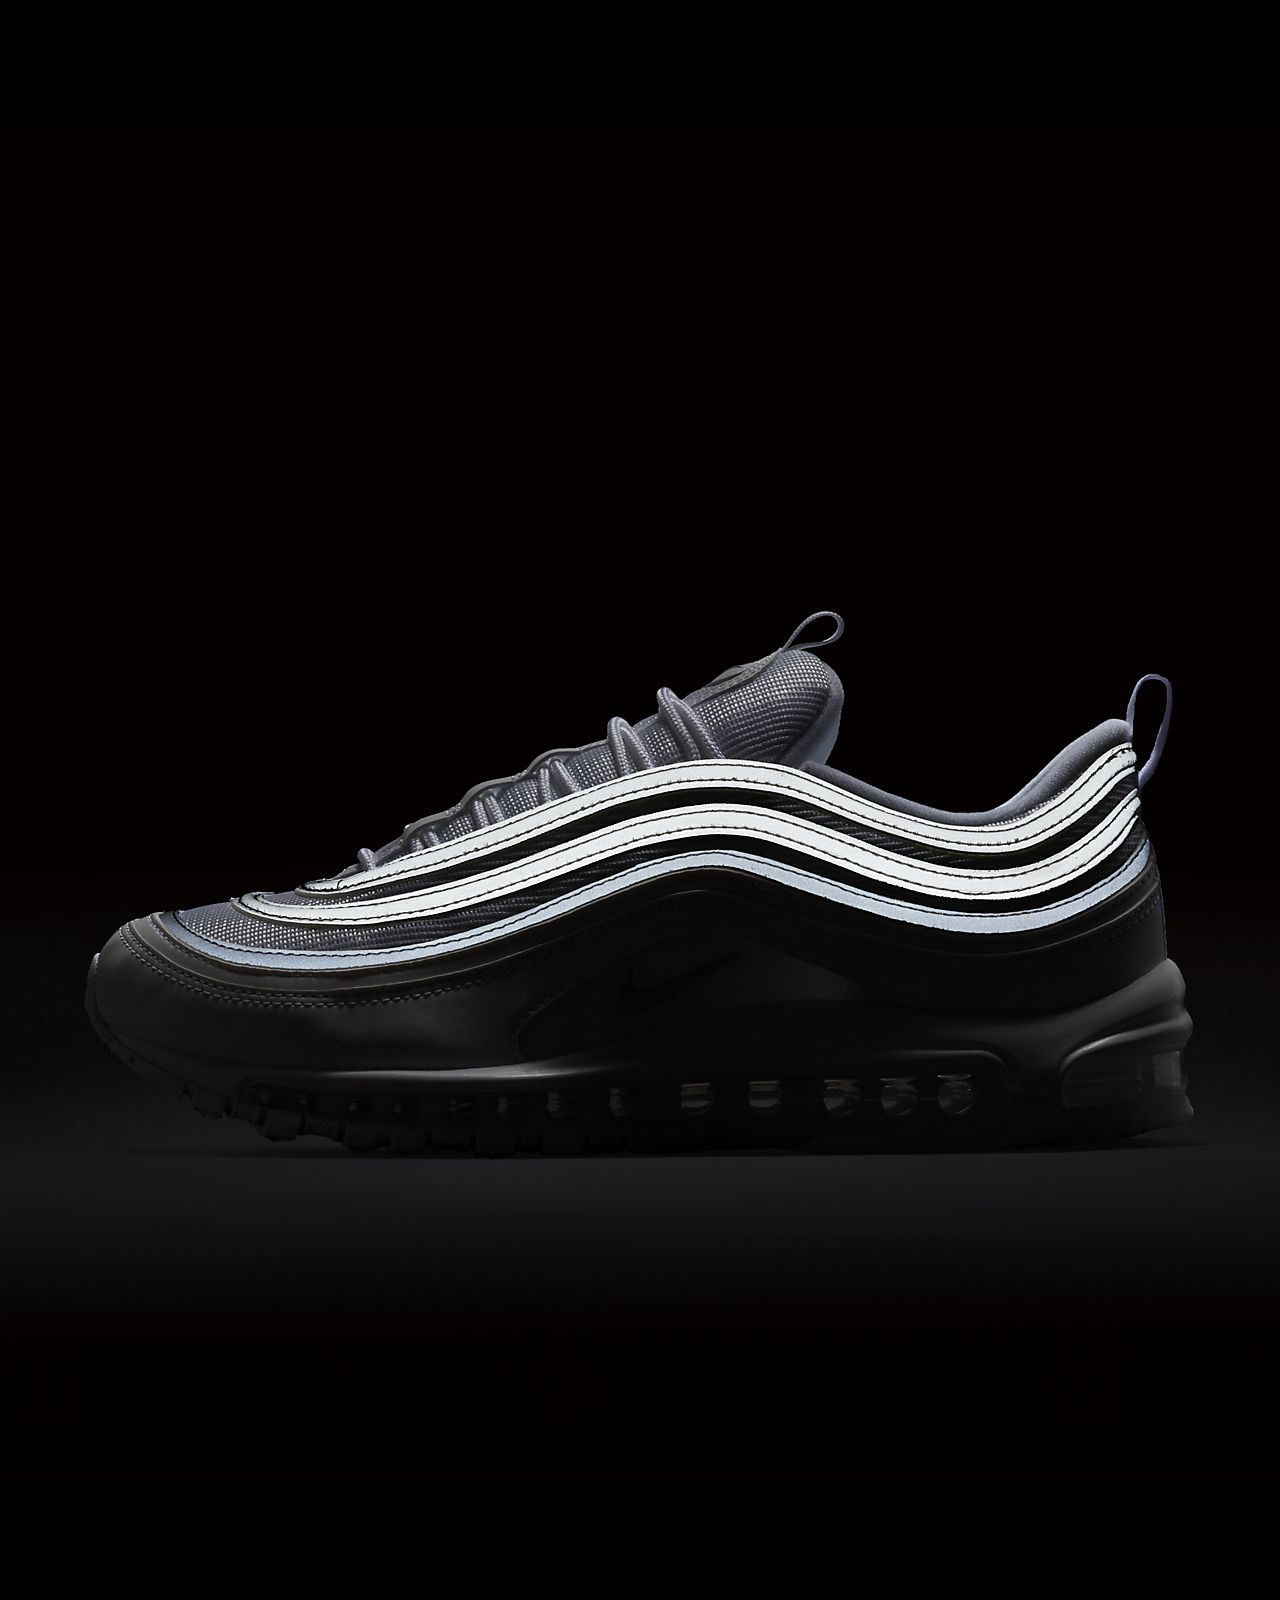 hot sales 05ebf af99c Nike Air Max 97 Men's Shoe